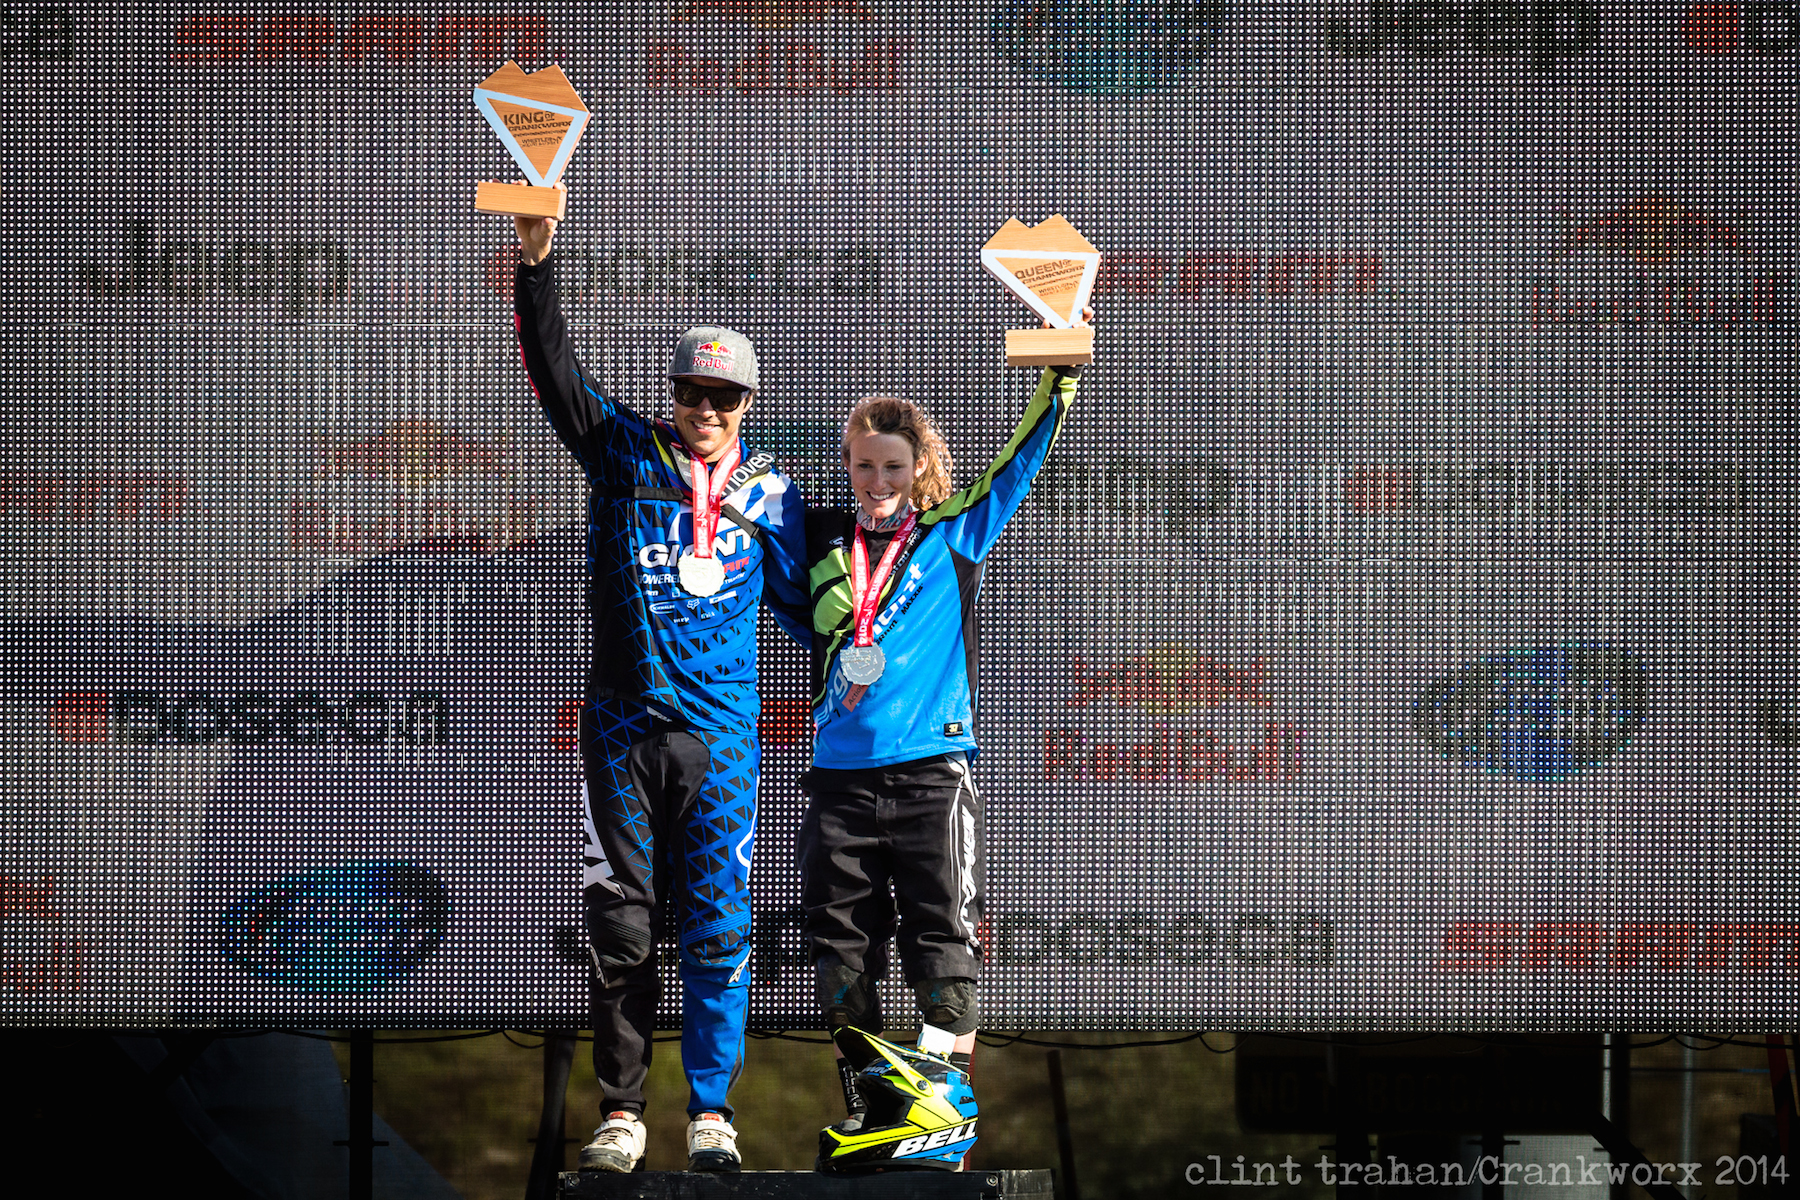 King & Queen of Crankworx